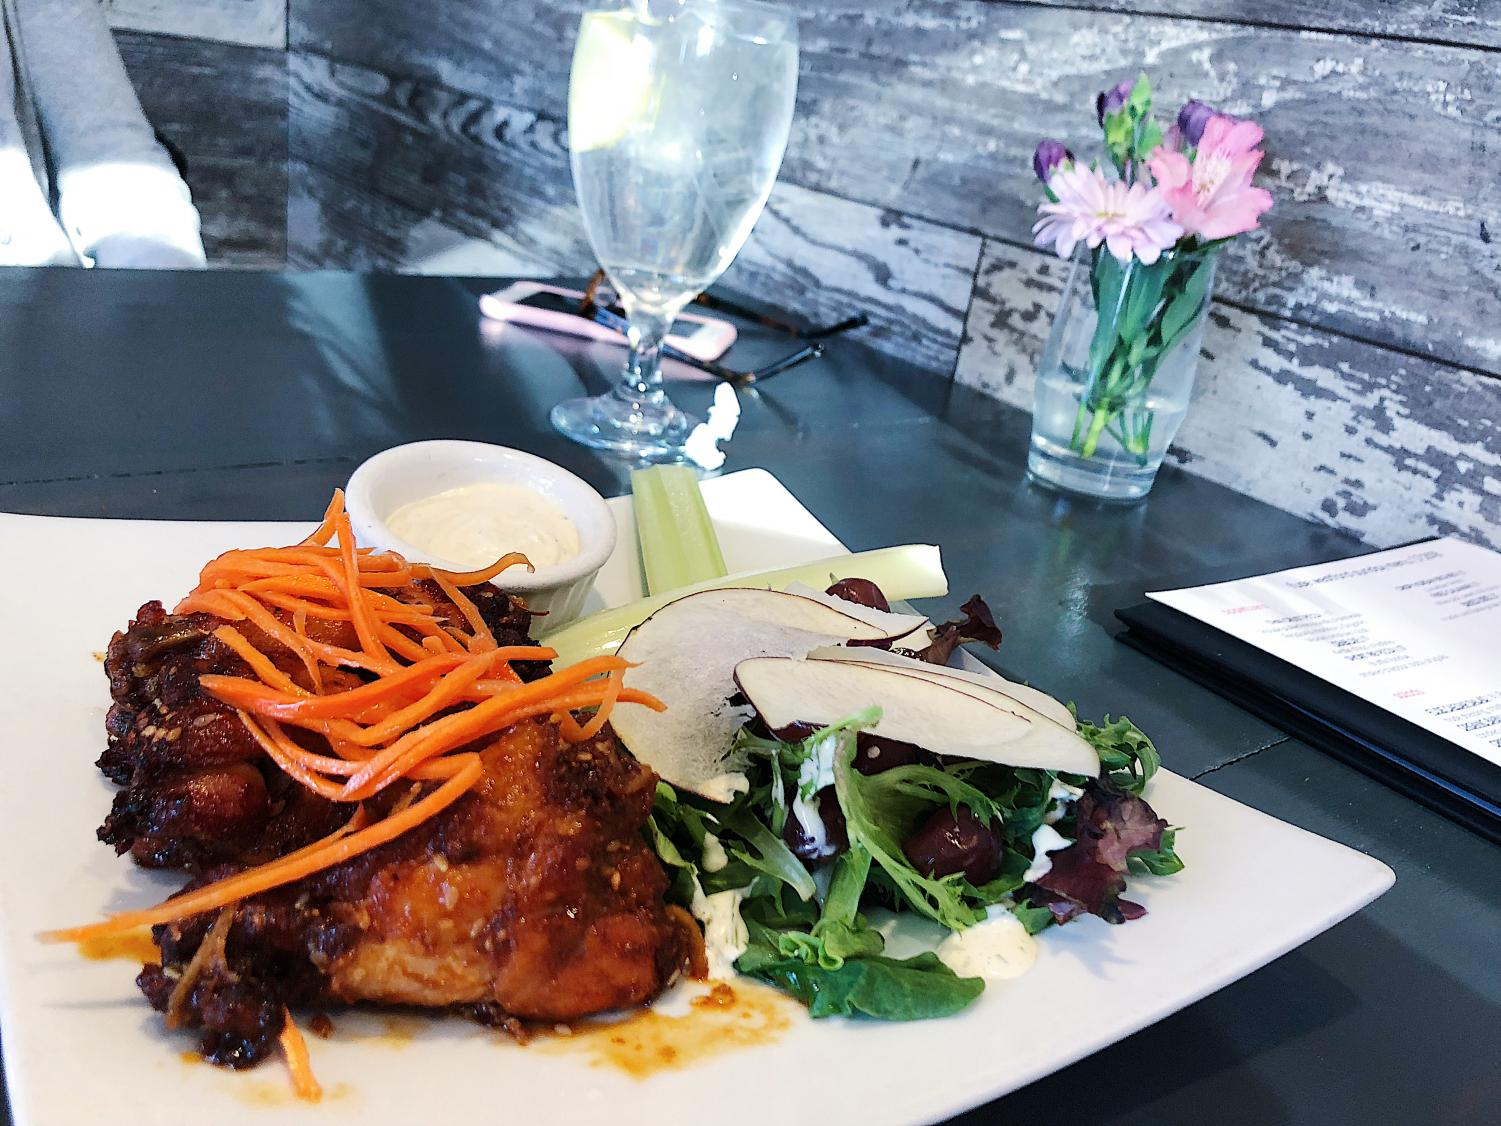 The+Twice-Cooked+Zippy+Chicken+Wings%2C+which+have+excellent+customer+ratings.